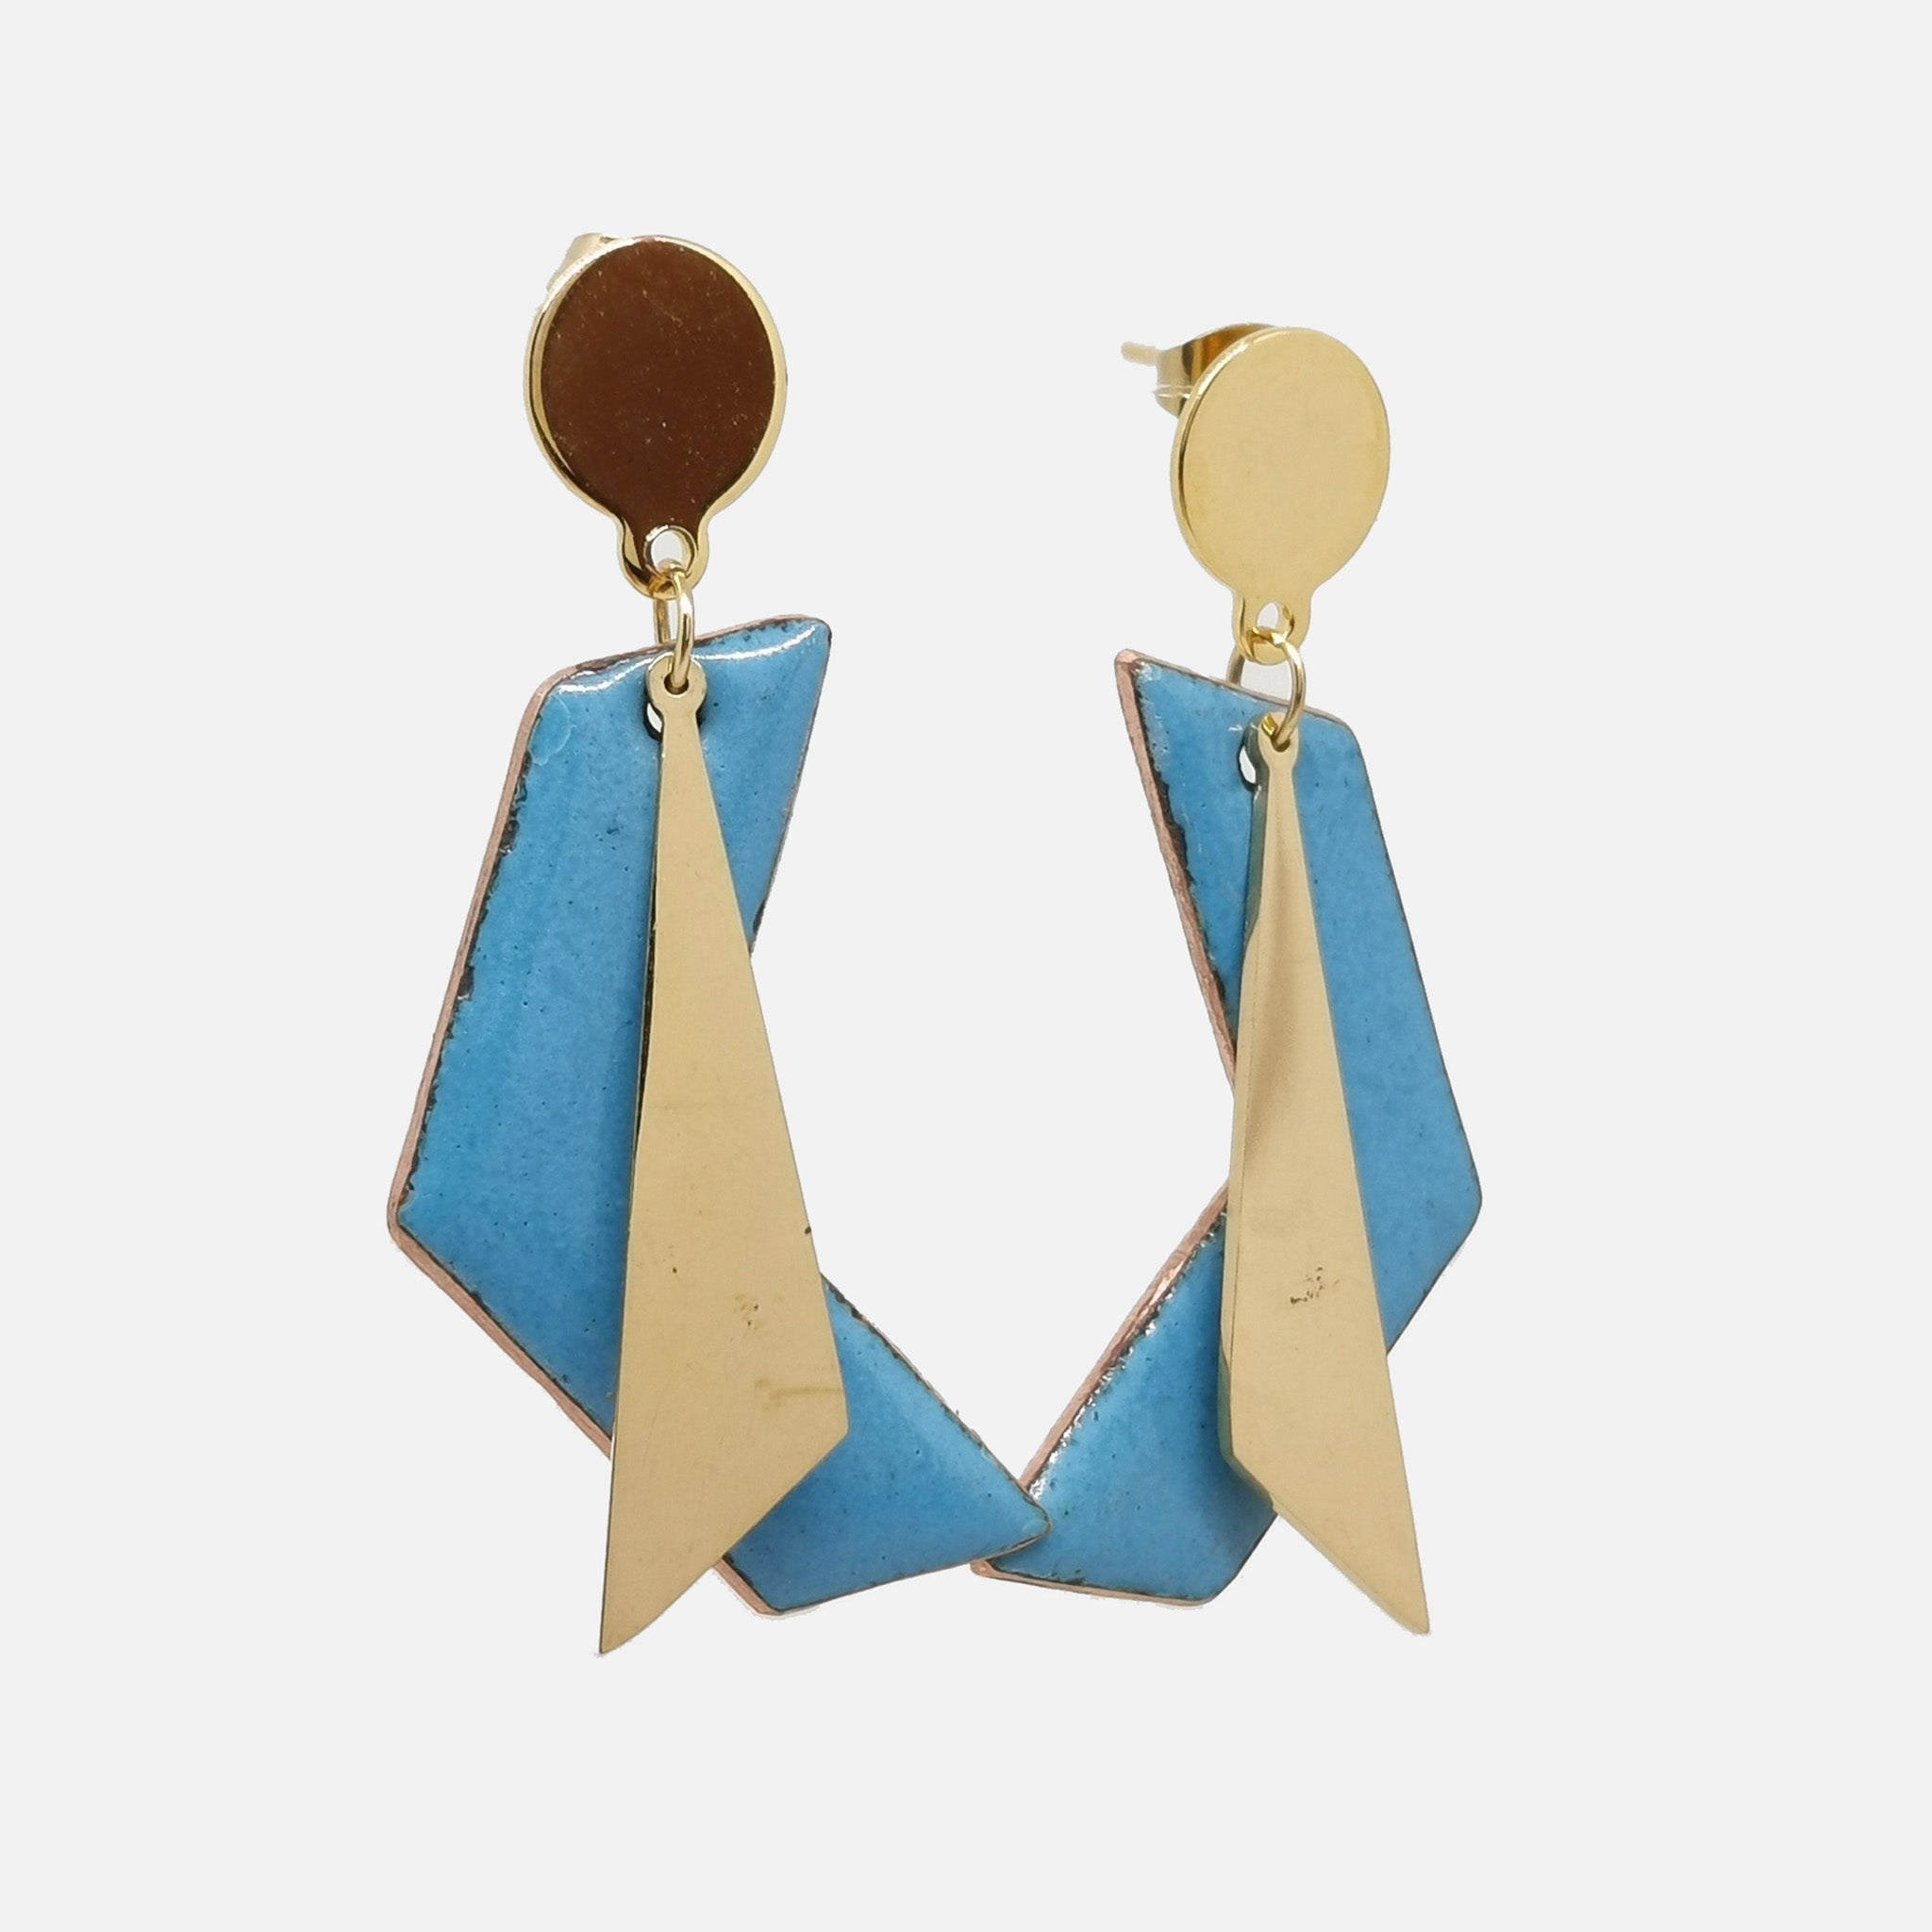 Boucles d'oreilles Roxane - Collection Uni Bleu